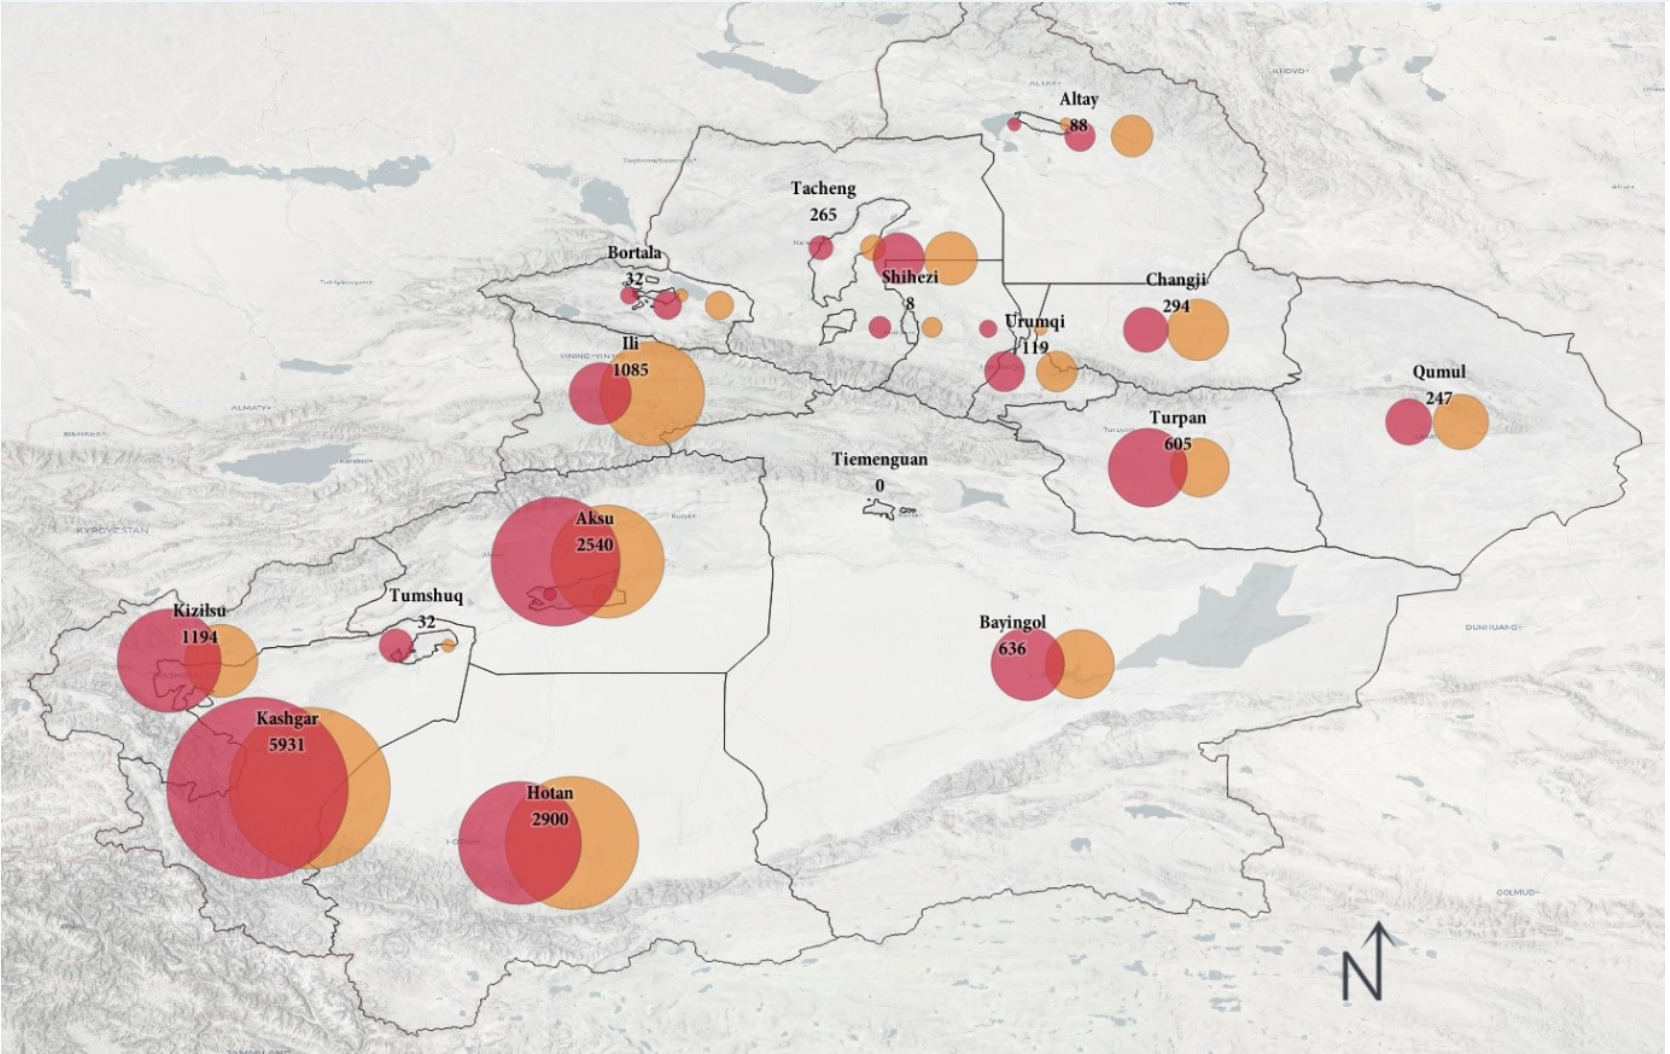 Red dots represent the estimated number of destroyed mosques, orange represents the estimated number of damaged mosques. The number written shows these two combined.